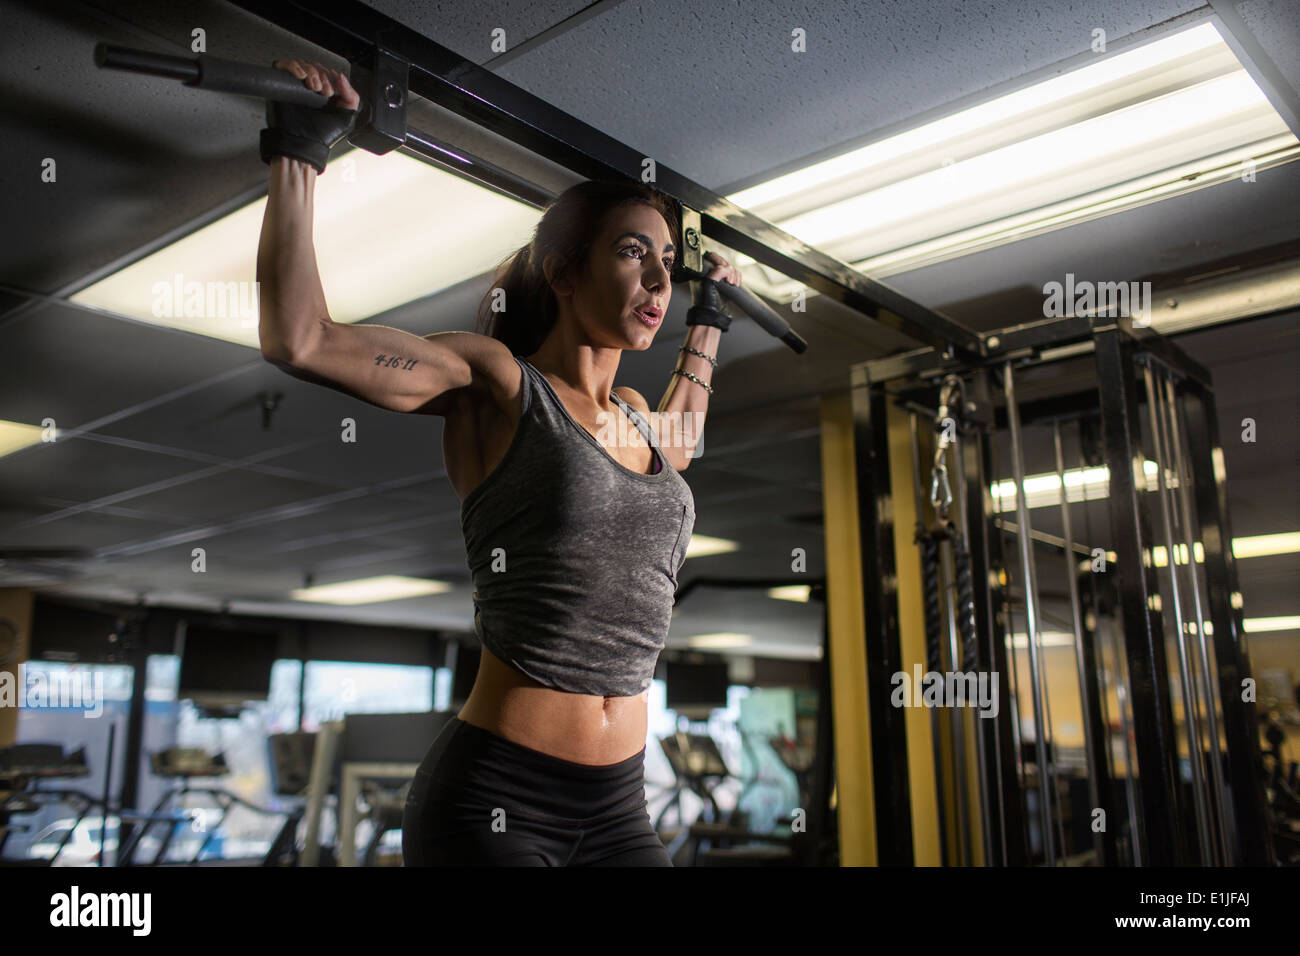 Mid adult woman doing pectoral exercise in gym - Stock Image